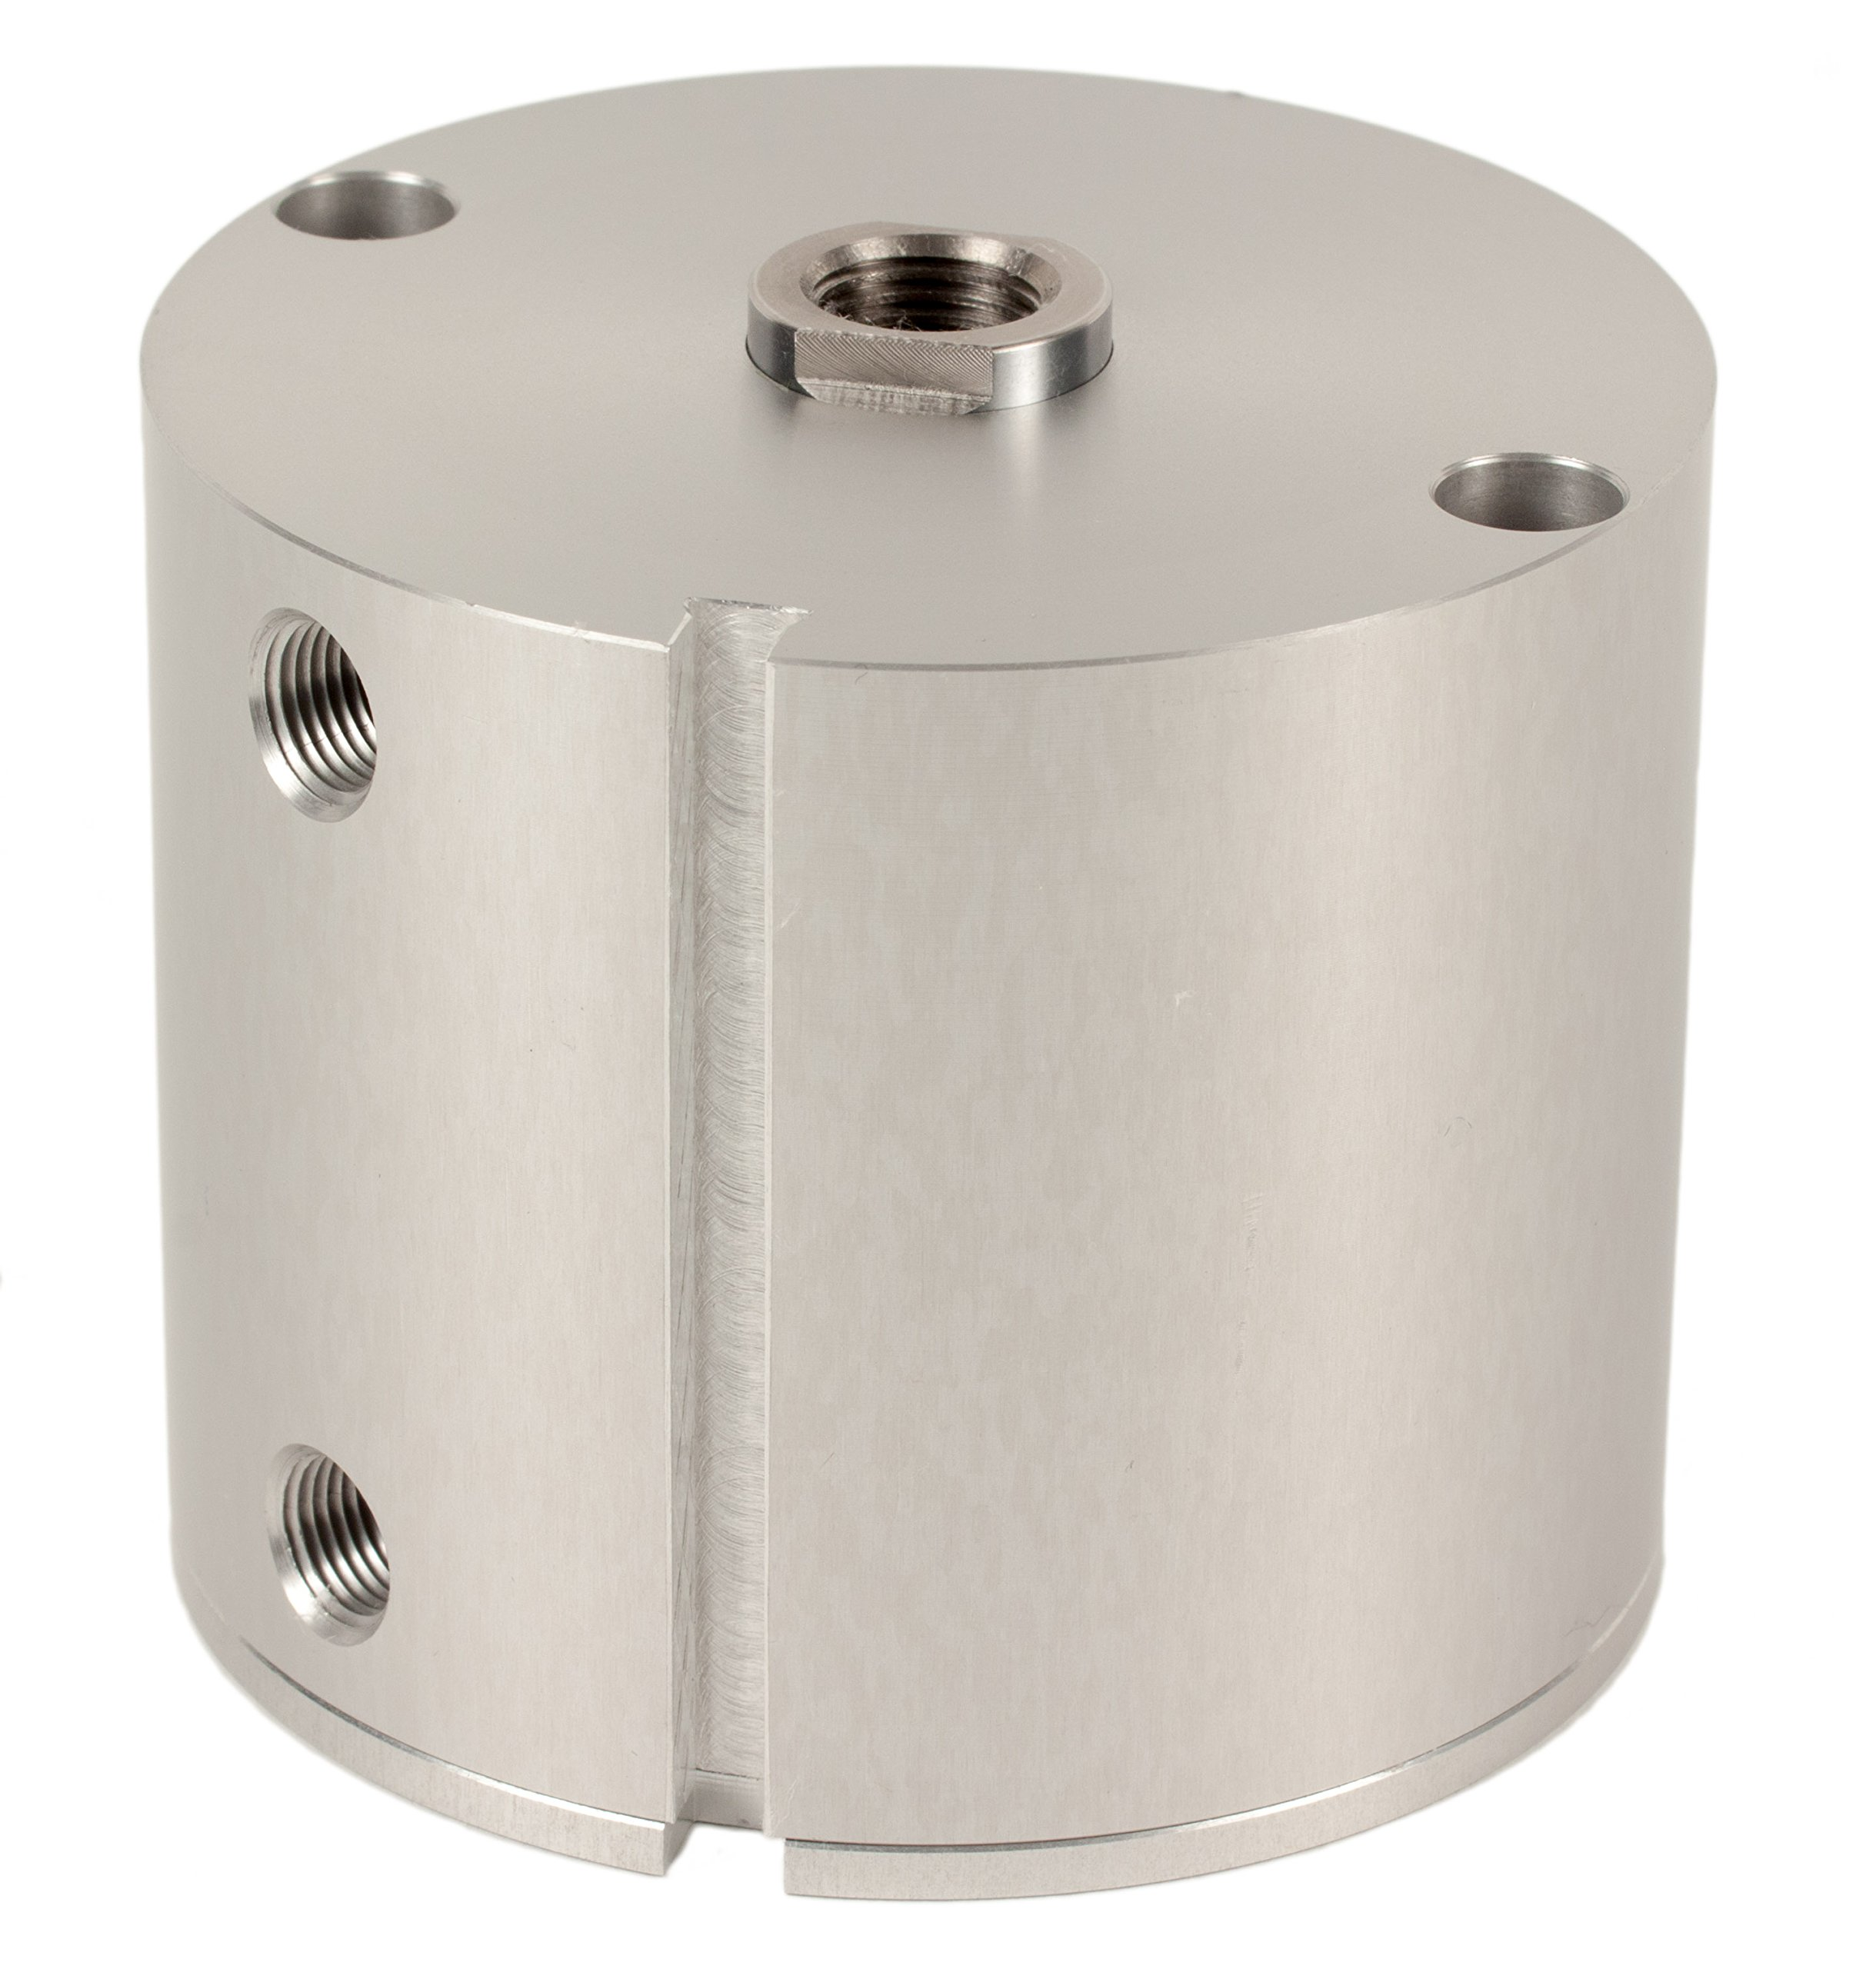 Fabco-Air E-321-X-E Original Pancake Cylinder, Double Acting, Maximum Pressure of 250 PSI, Switch Ready with Magnet, 2'' Bore Diameter x 1-1/2'' Stroke